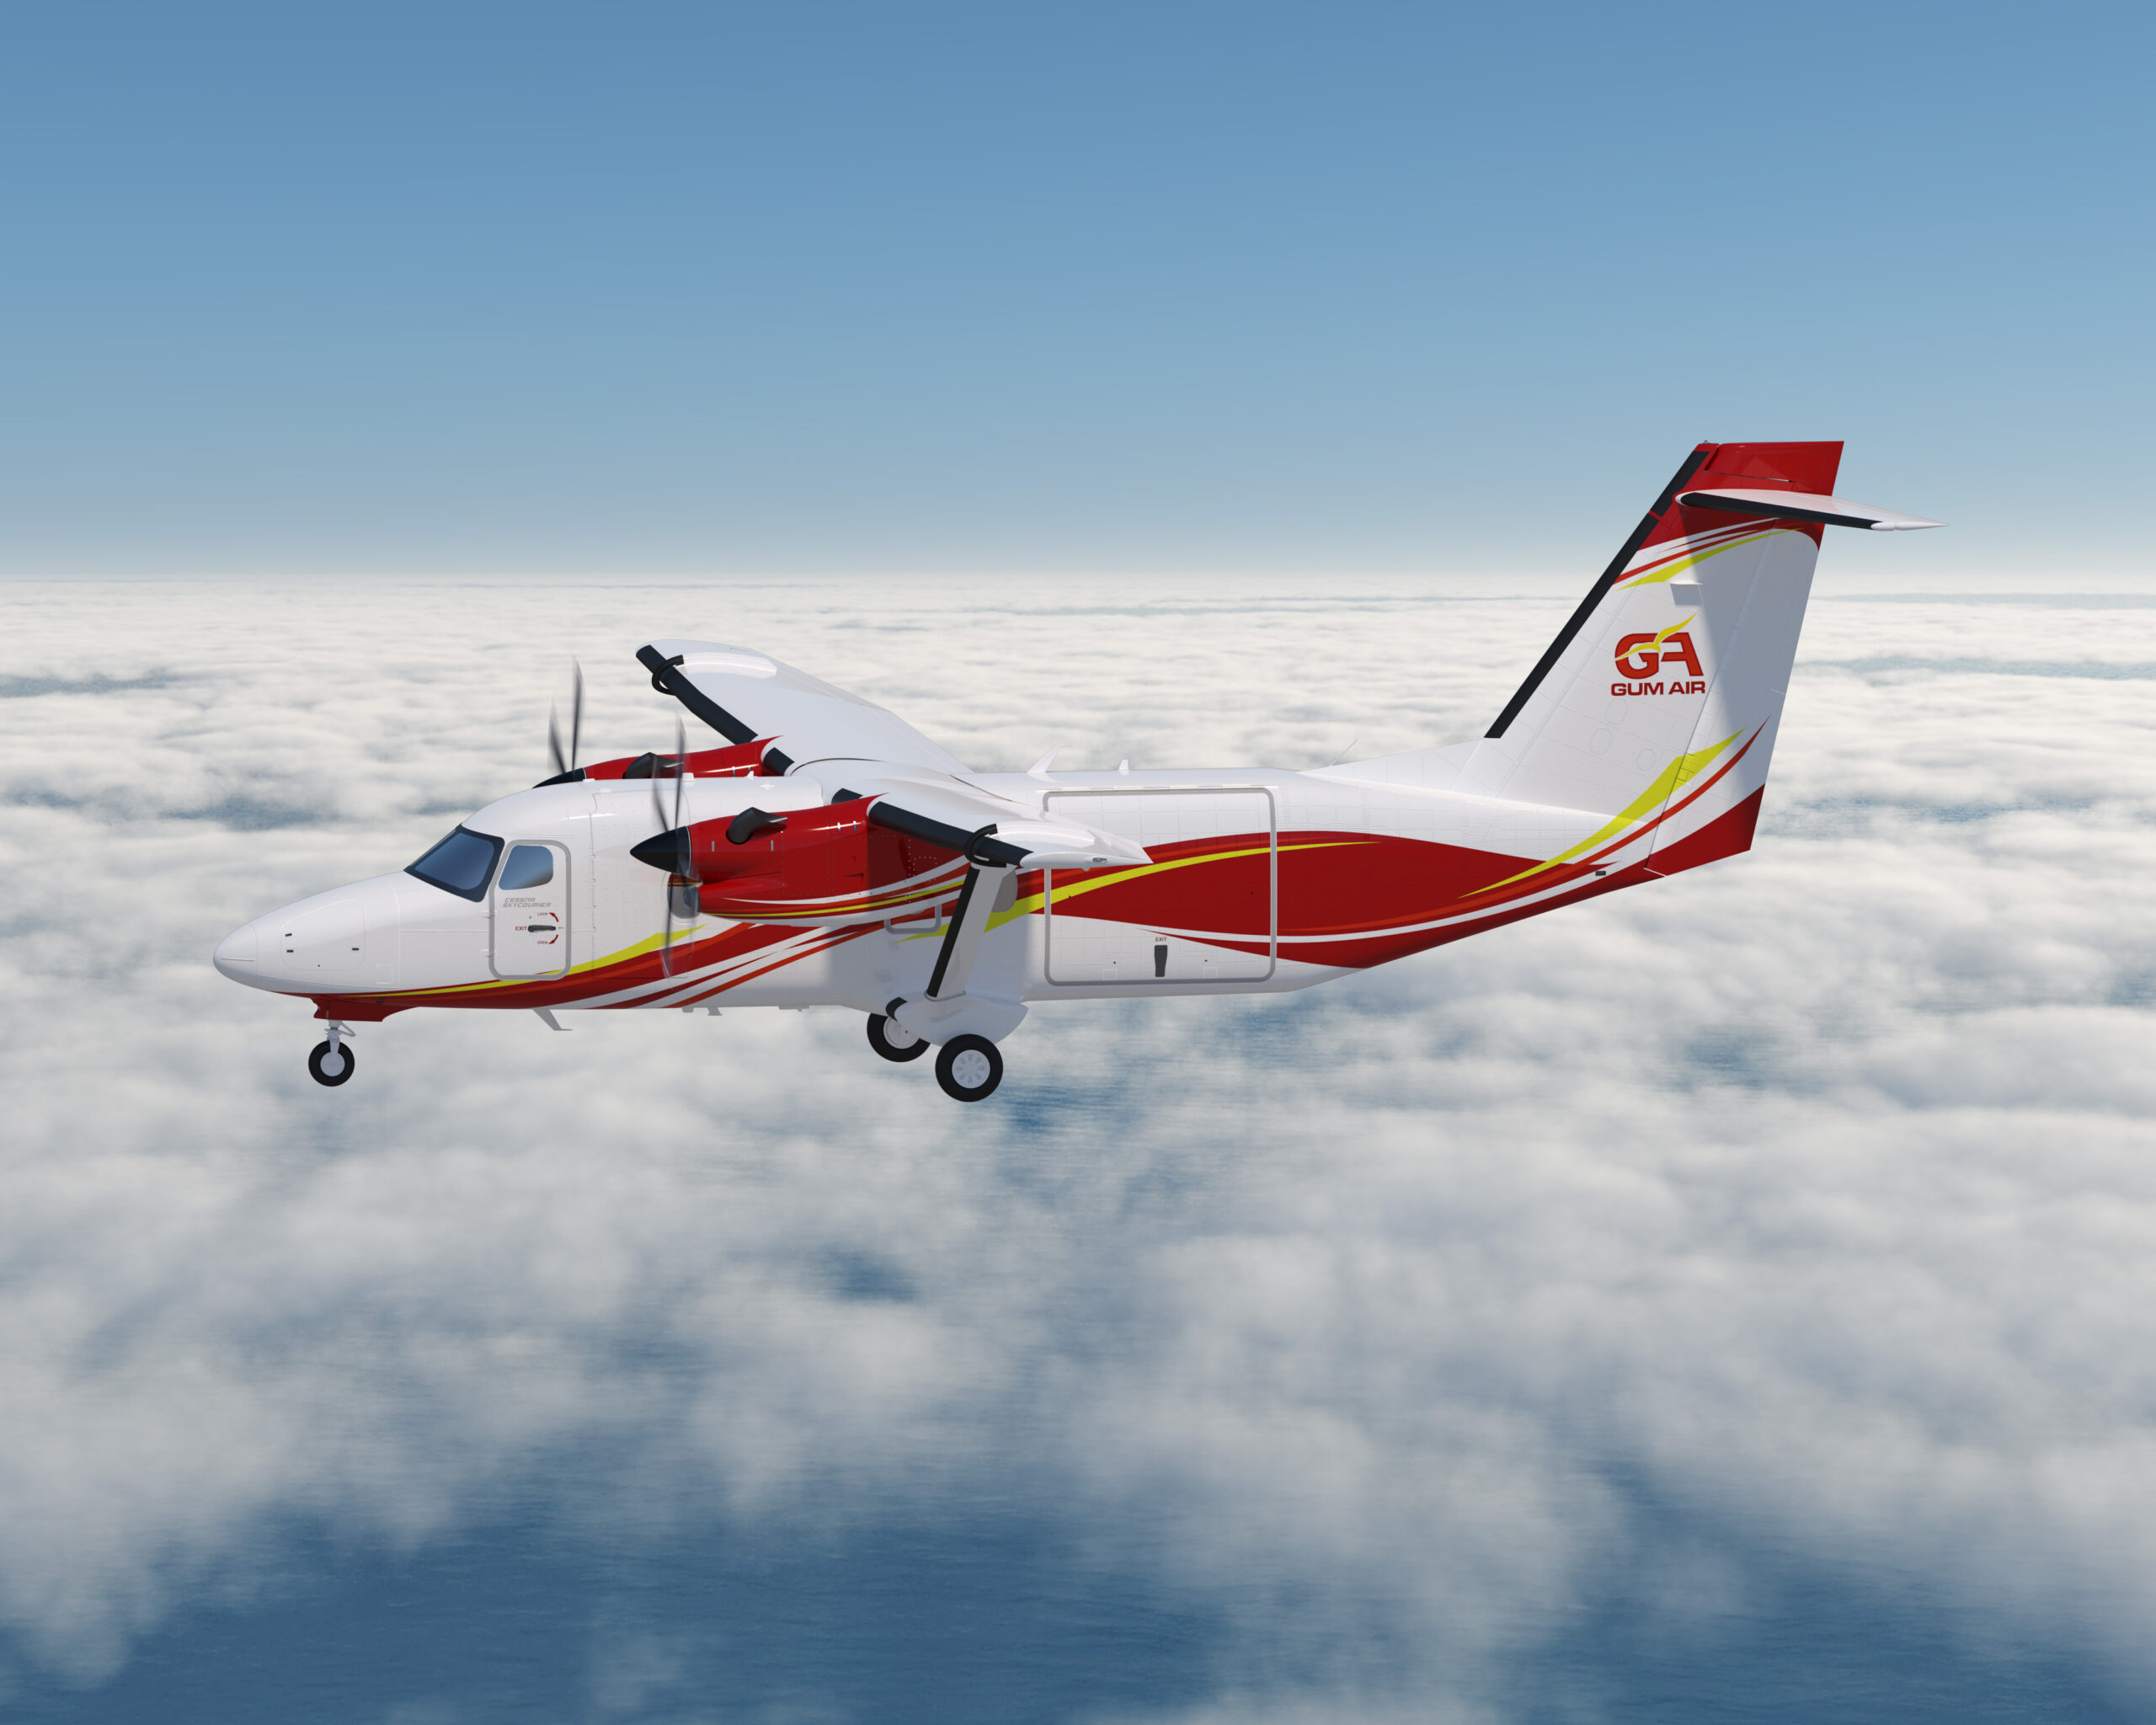 Gum Air places order to become the first operator in the Caribbean and Latin America to take delivery of a Cessna SkyCourier